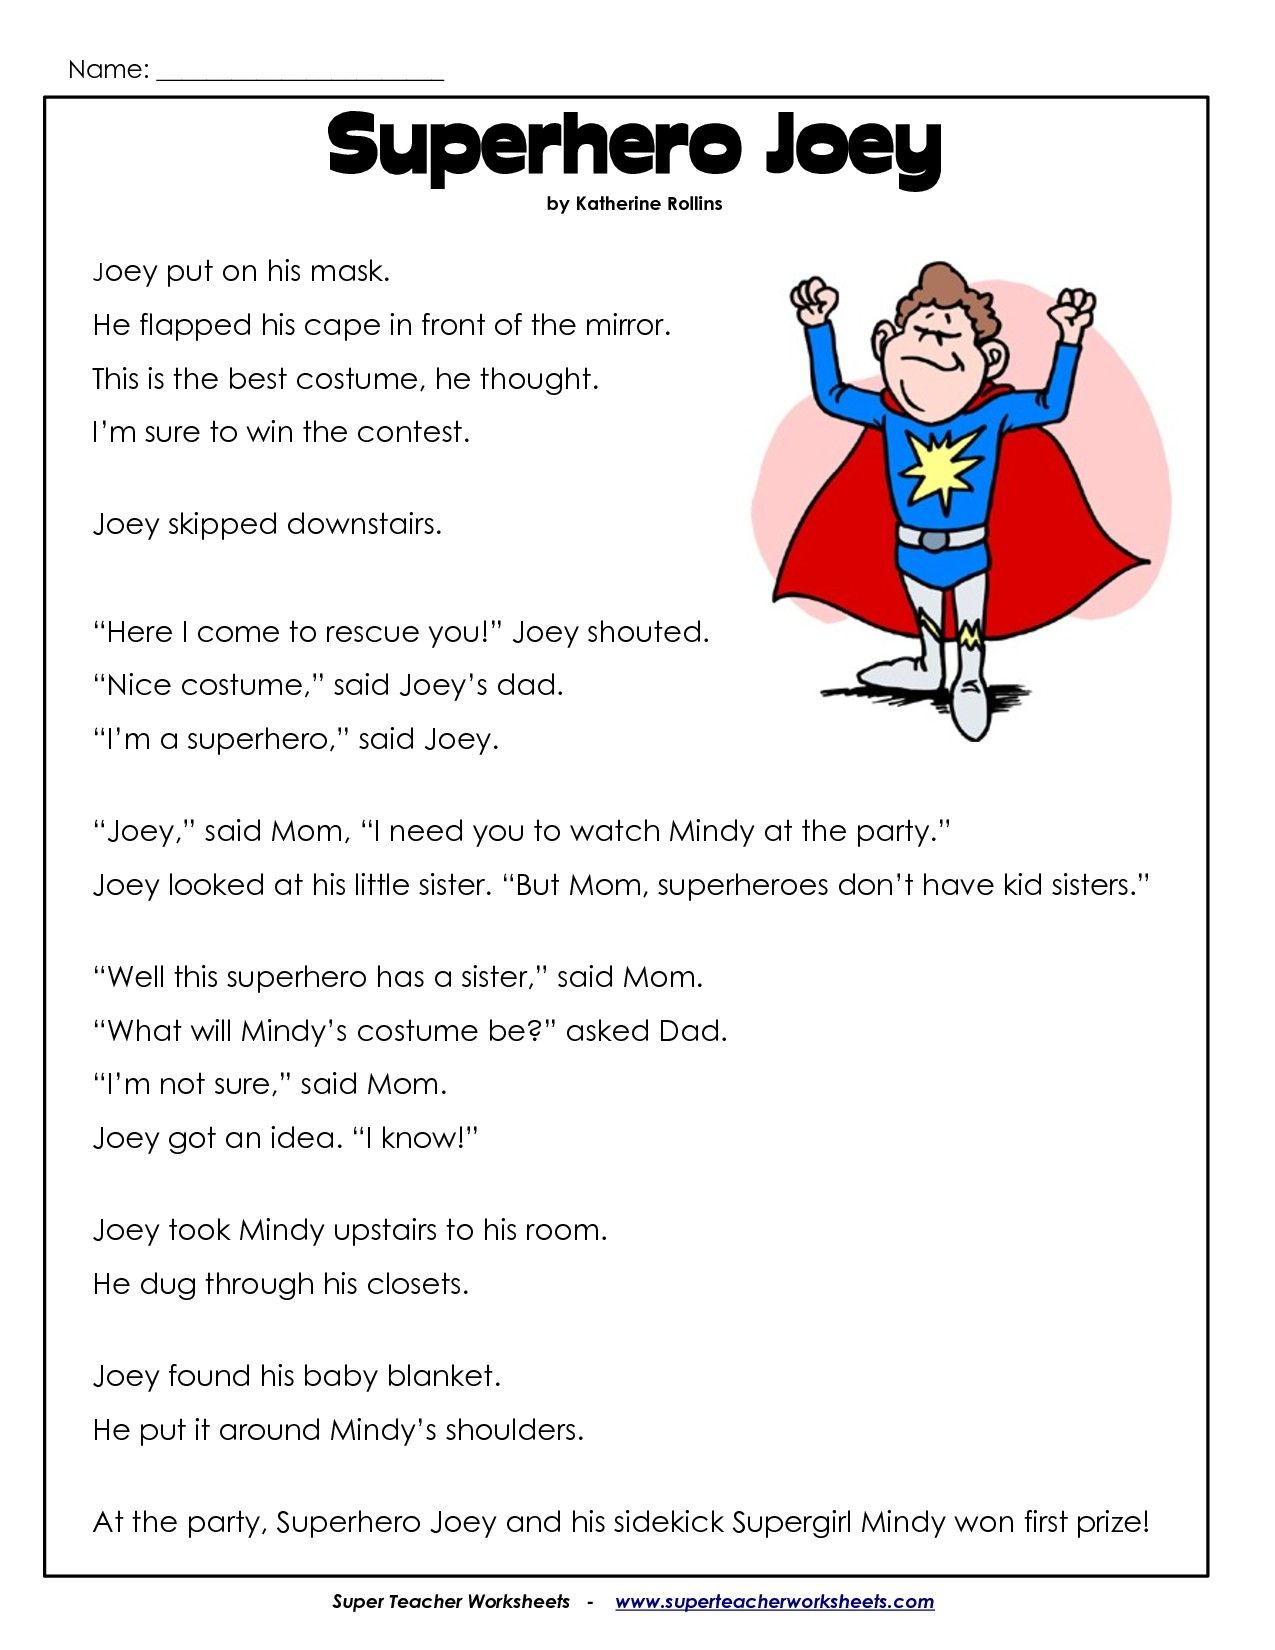 Worksheet Superhero Worksheets Grass Fedjp Worksheet